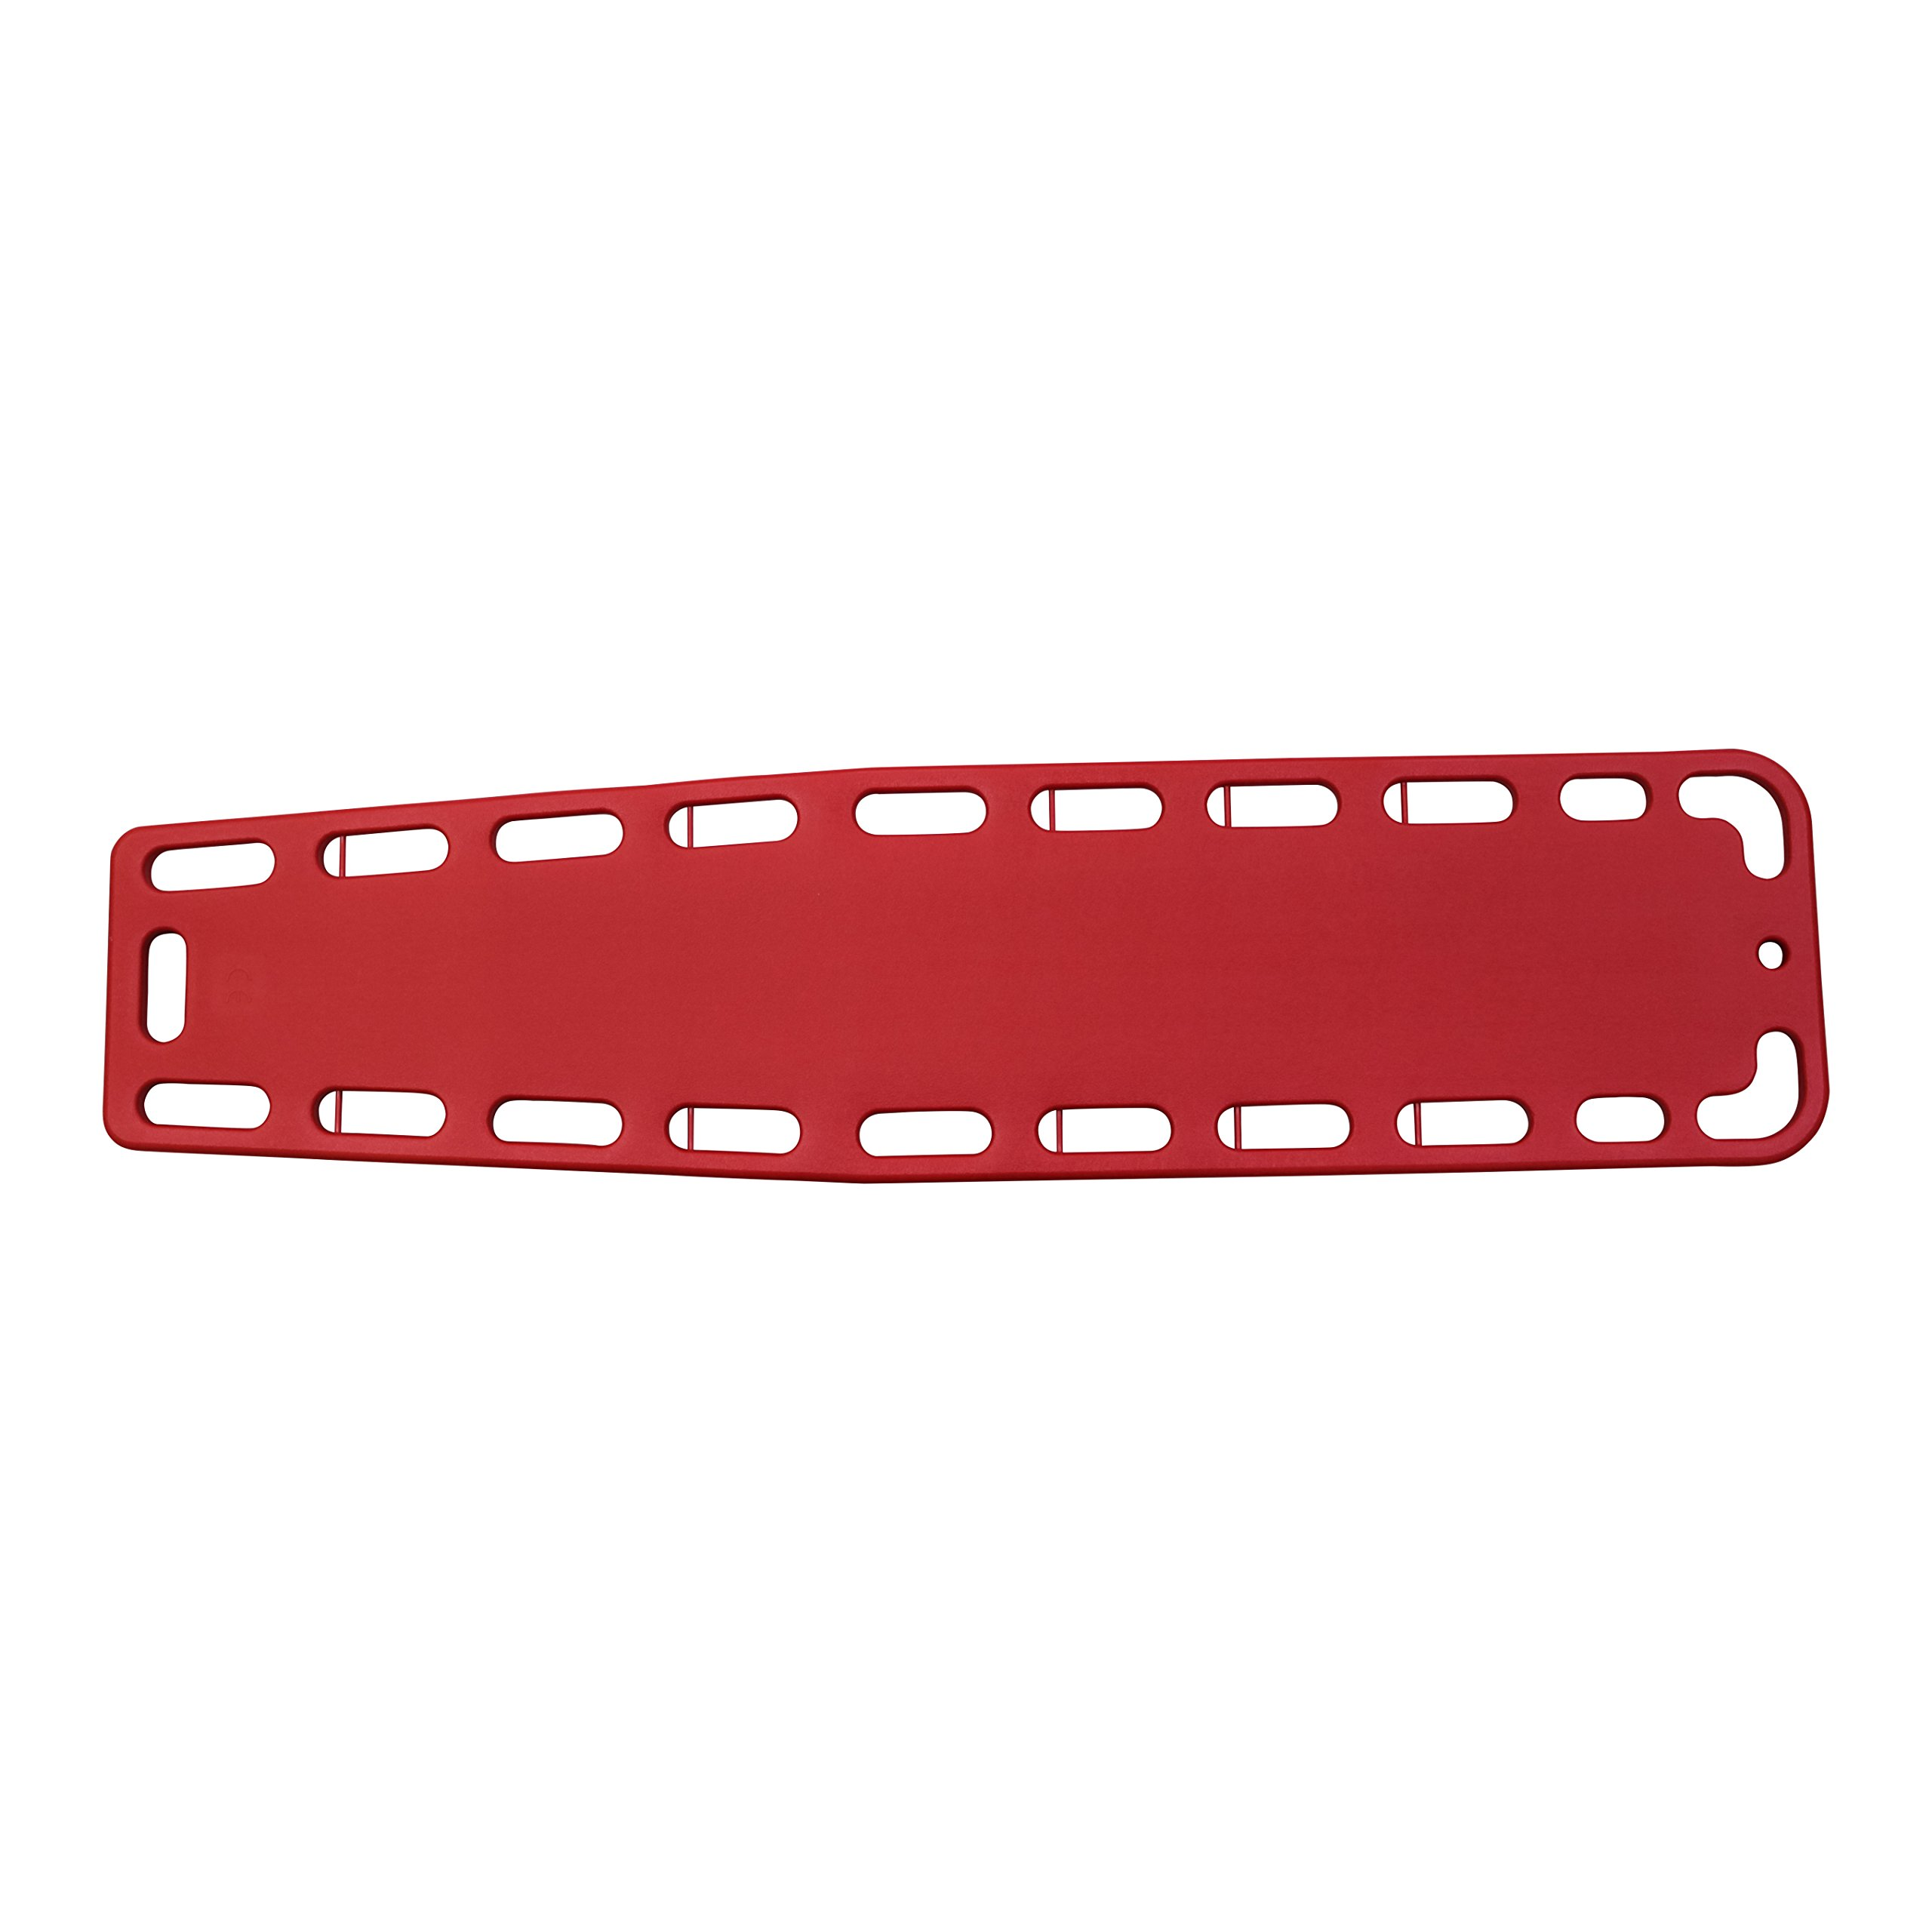 Kemp 10-993 Spineboard Red